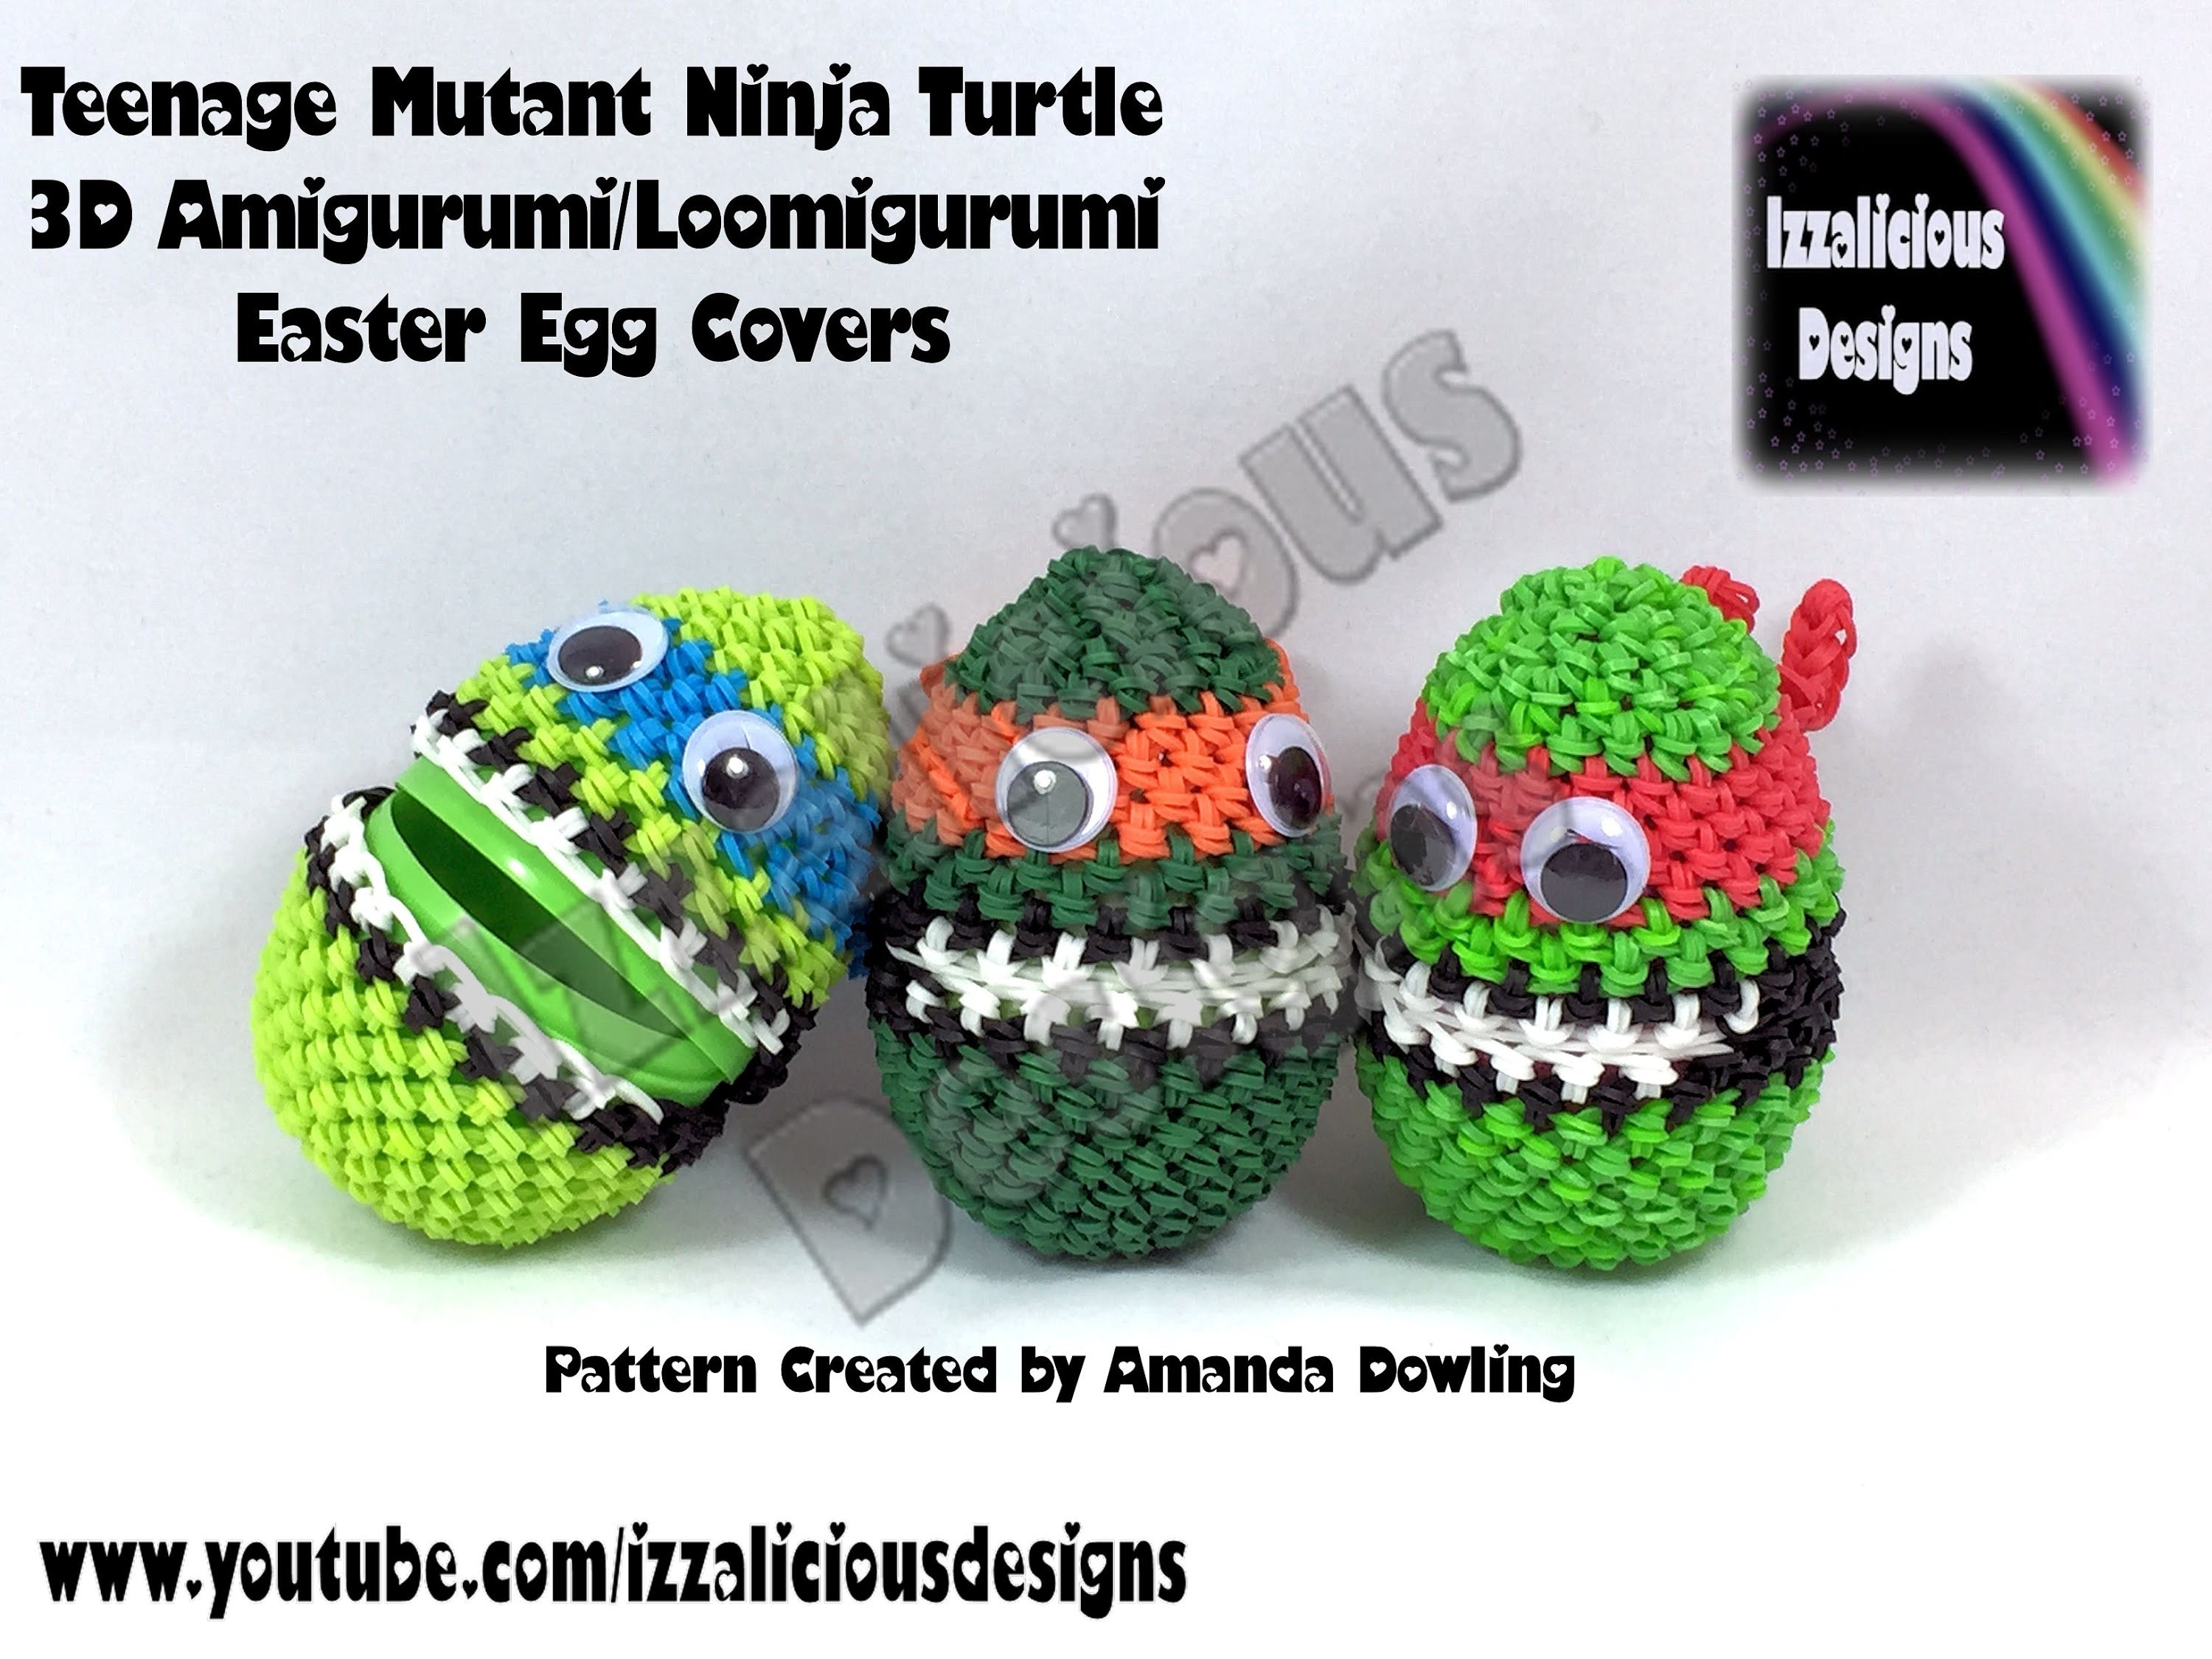 Rainbow Loom 3D Amigurumi.Loomigurumi Teenage Mutant Ninja Turtle Easter Egg Cover - Loomless